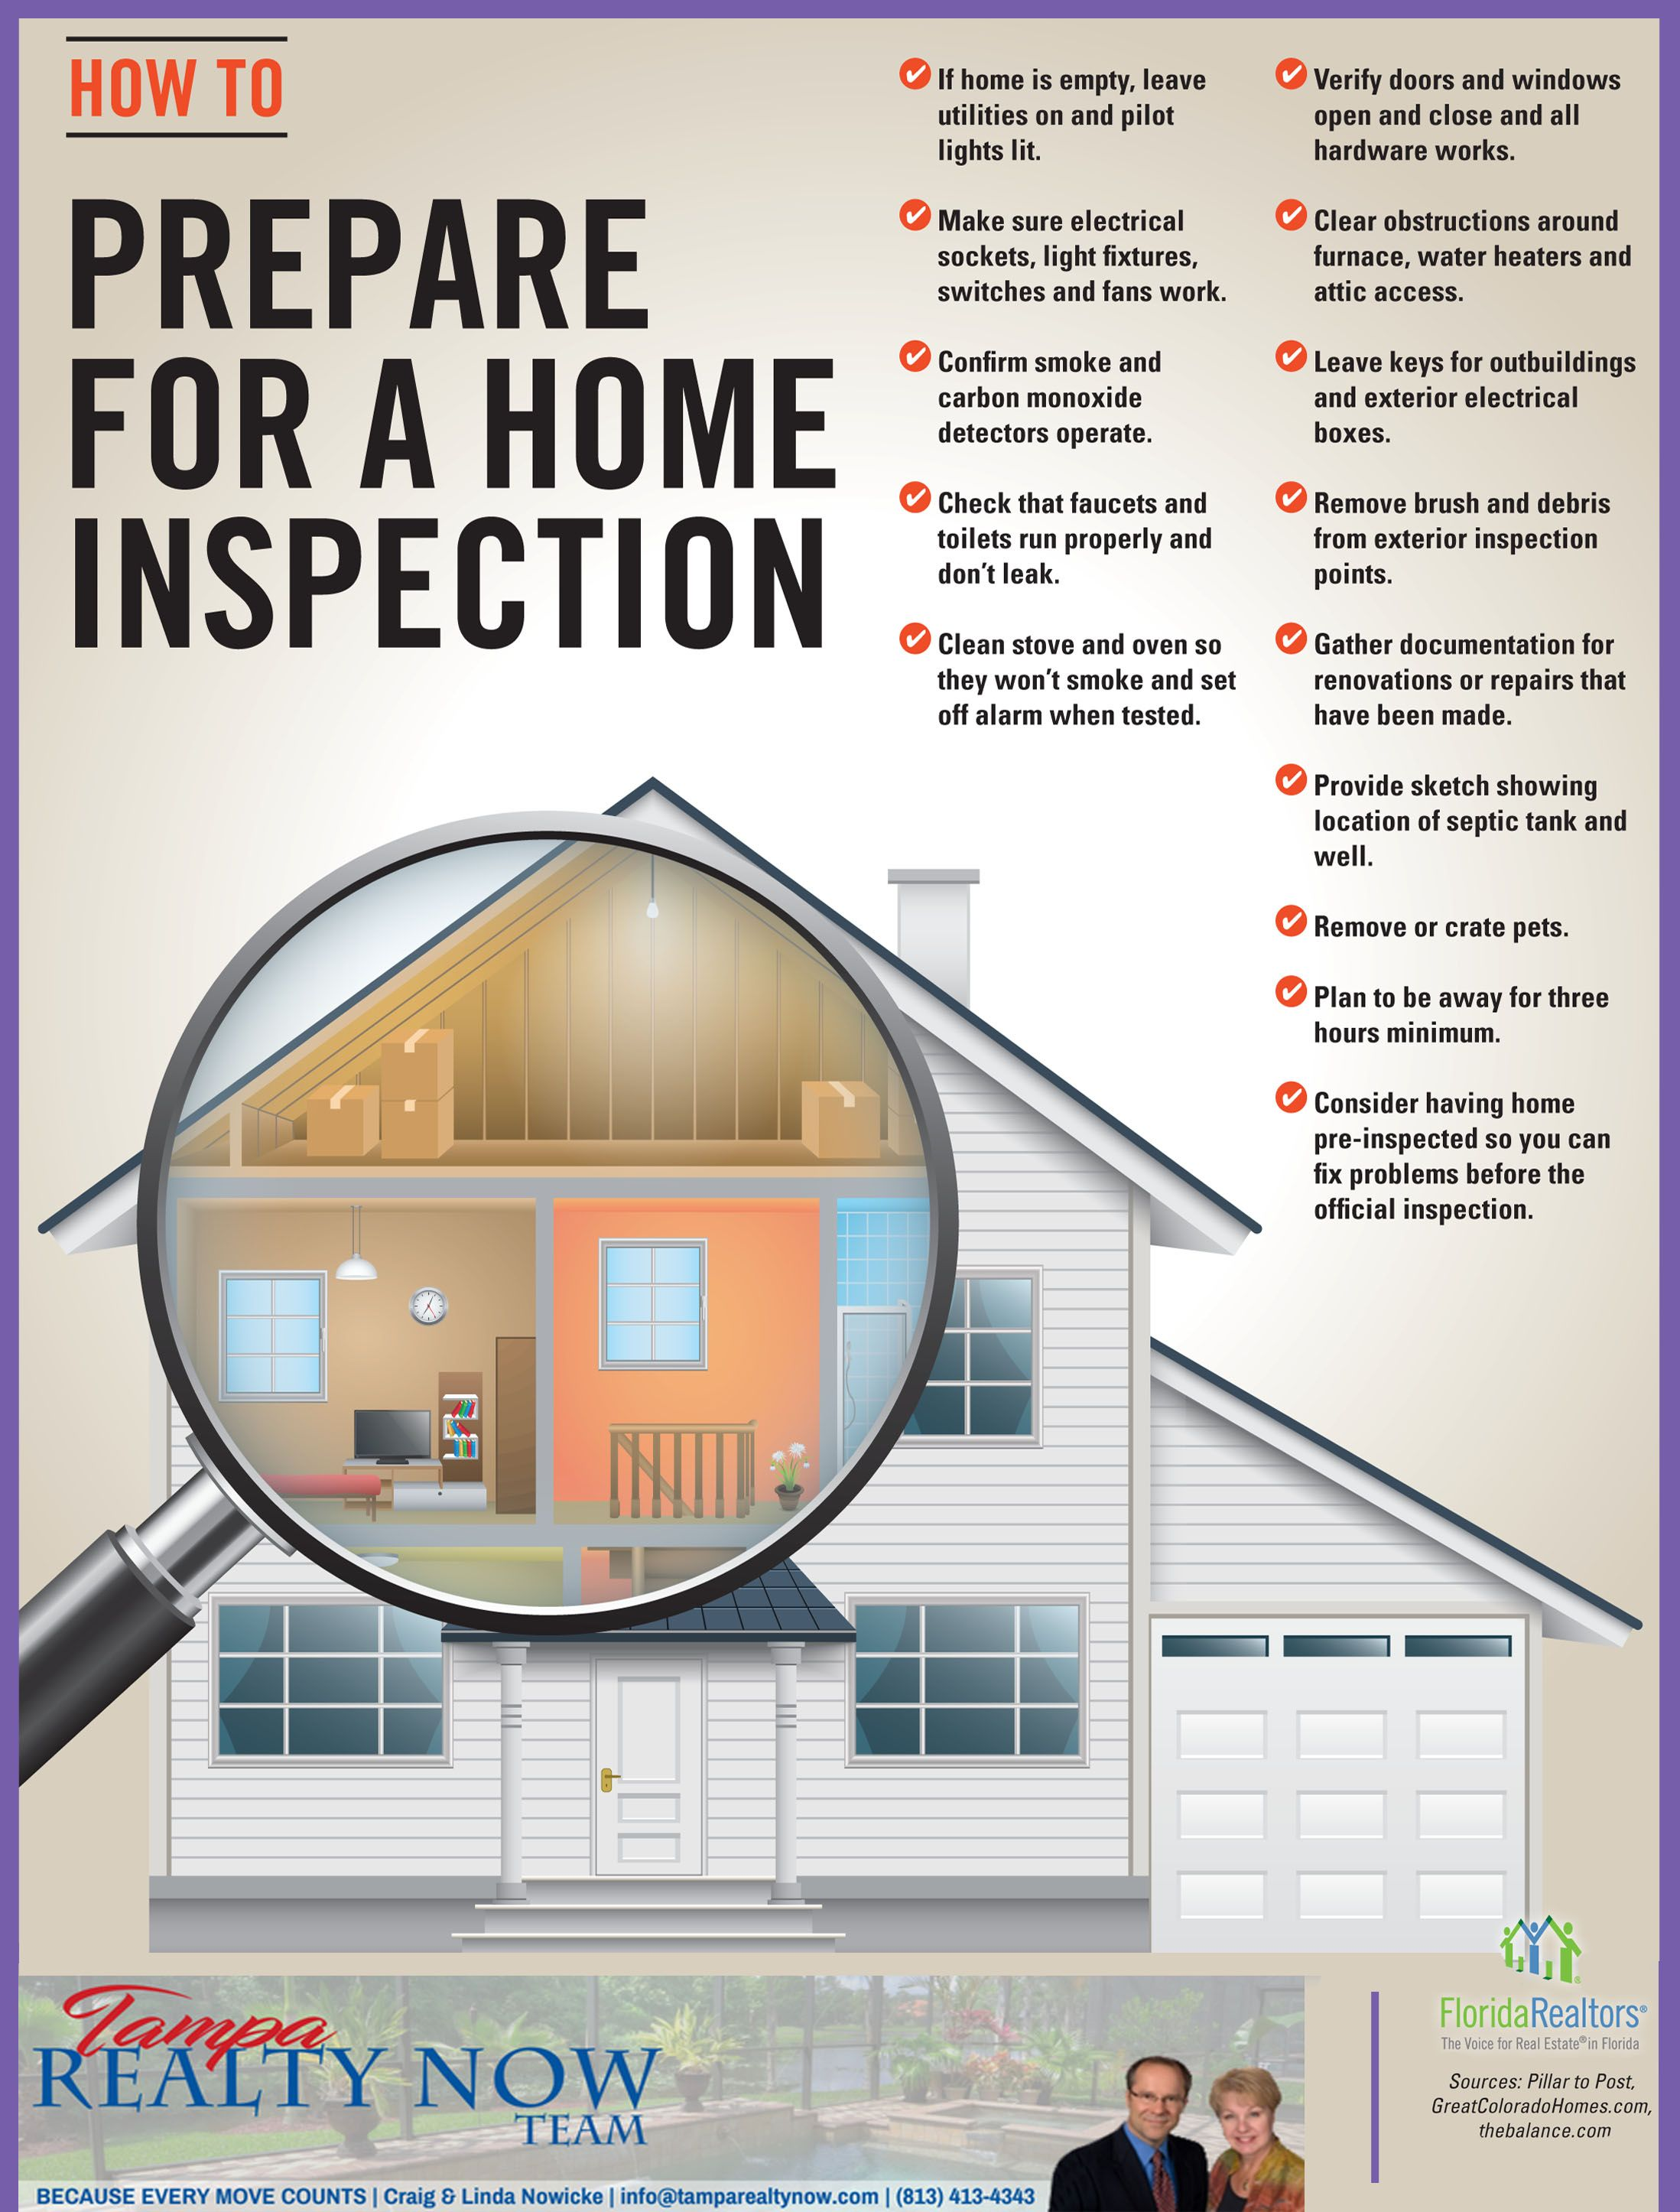 How To Prepare For A Home Inspection Home Inspection Home